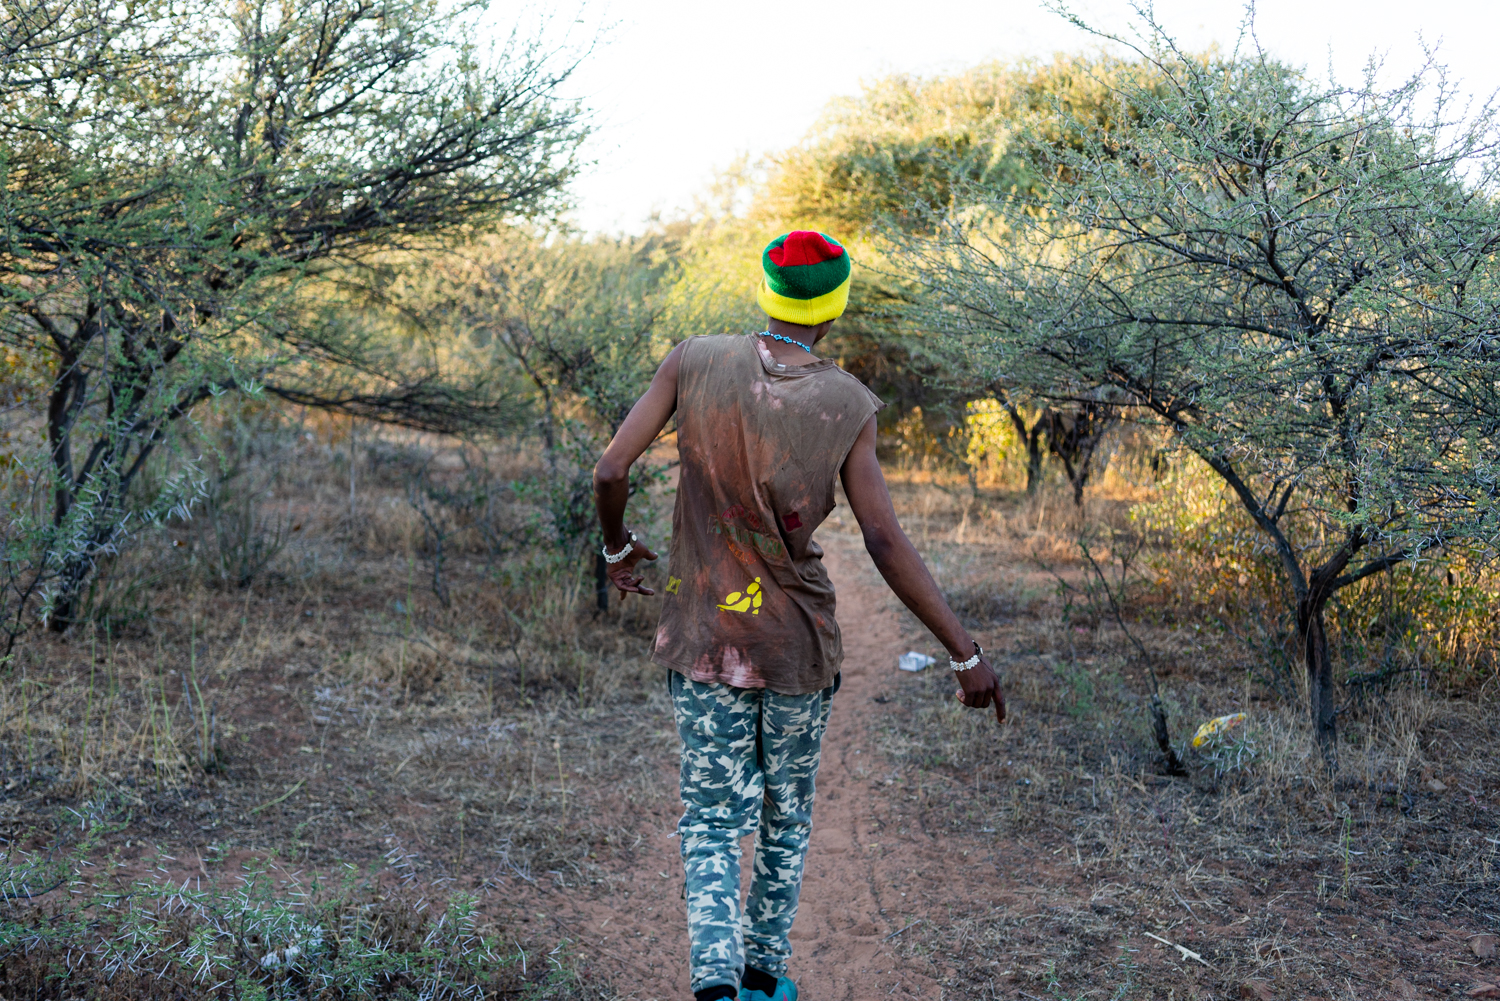 Alphynho walks along a dirt path back to his house. He always has music playing on his phone in his pocket and sings a dances wherever he goes.